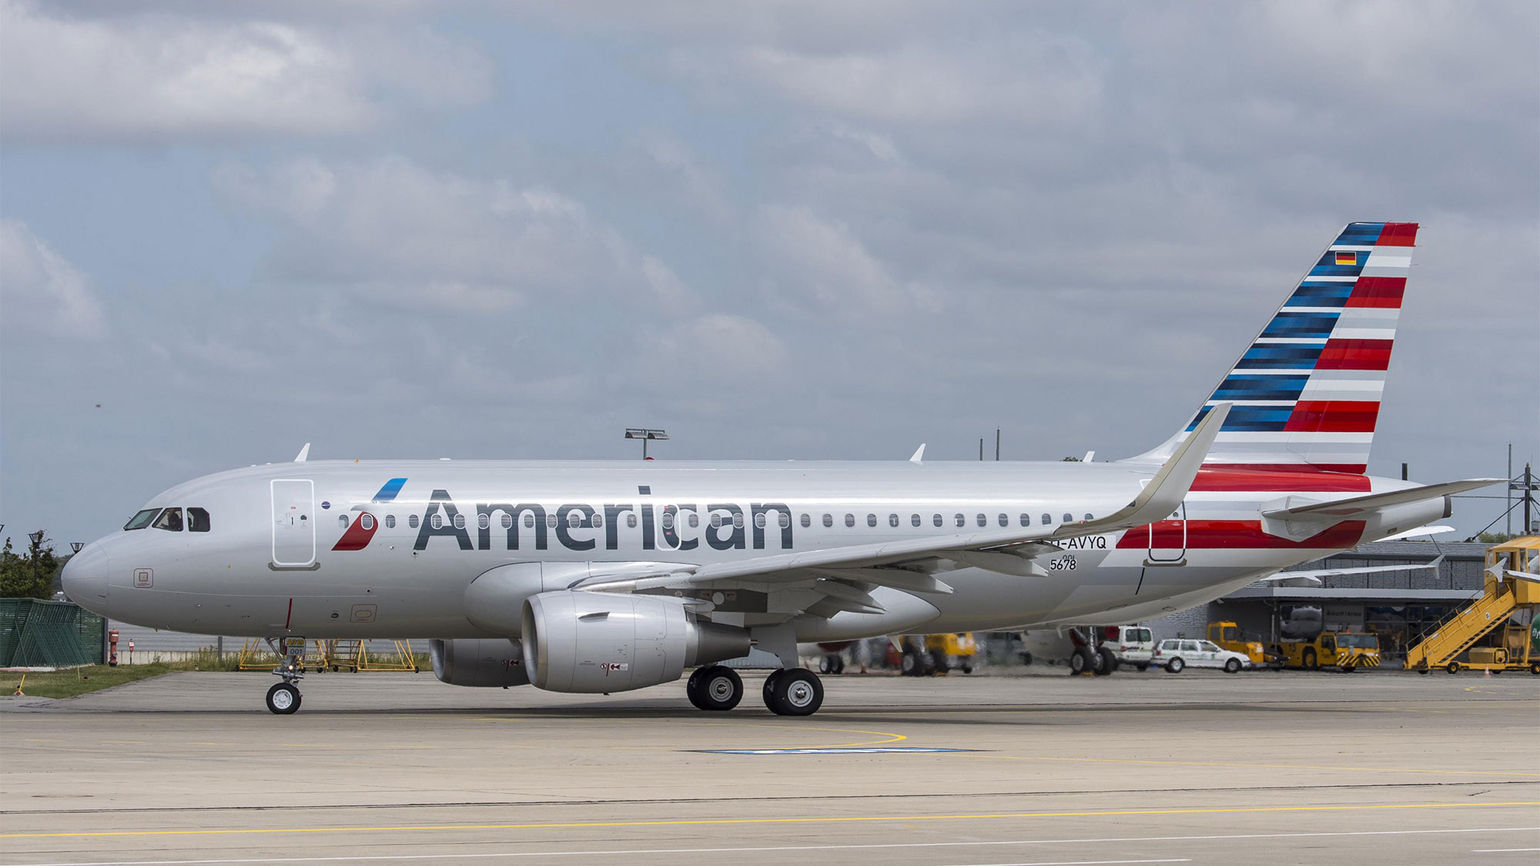 After delta-variant setback, AA says business travel is ramping up again